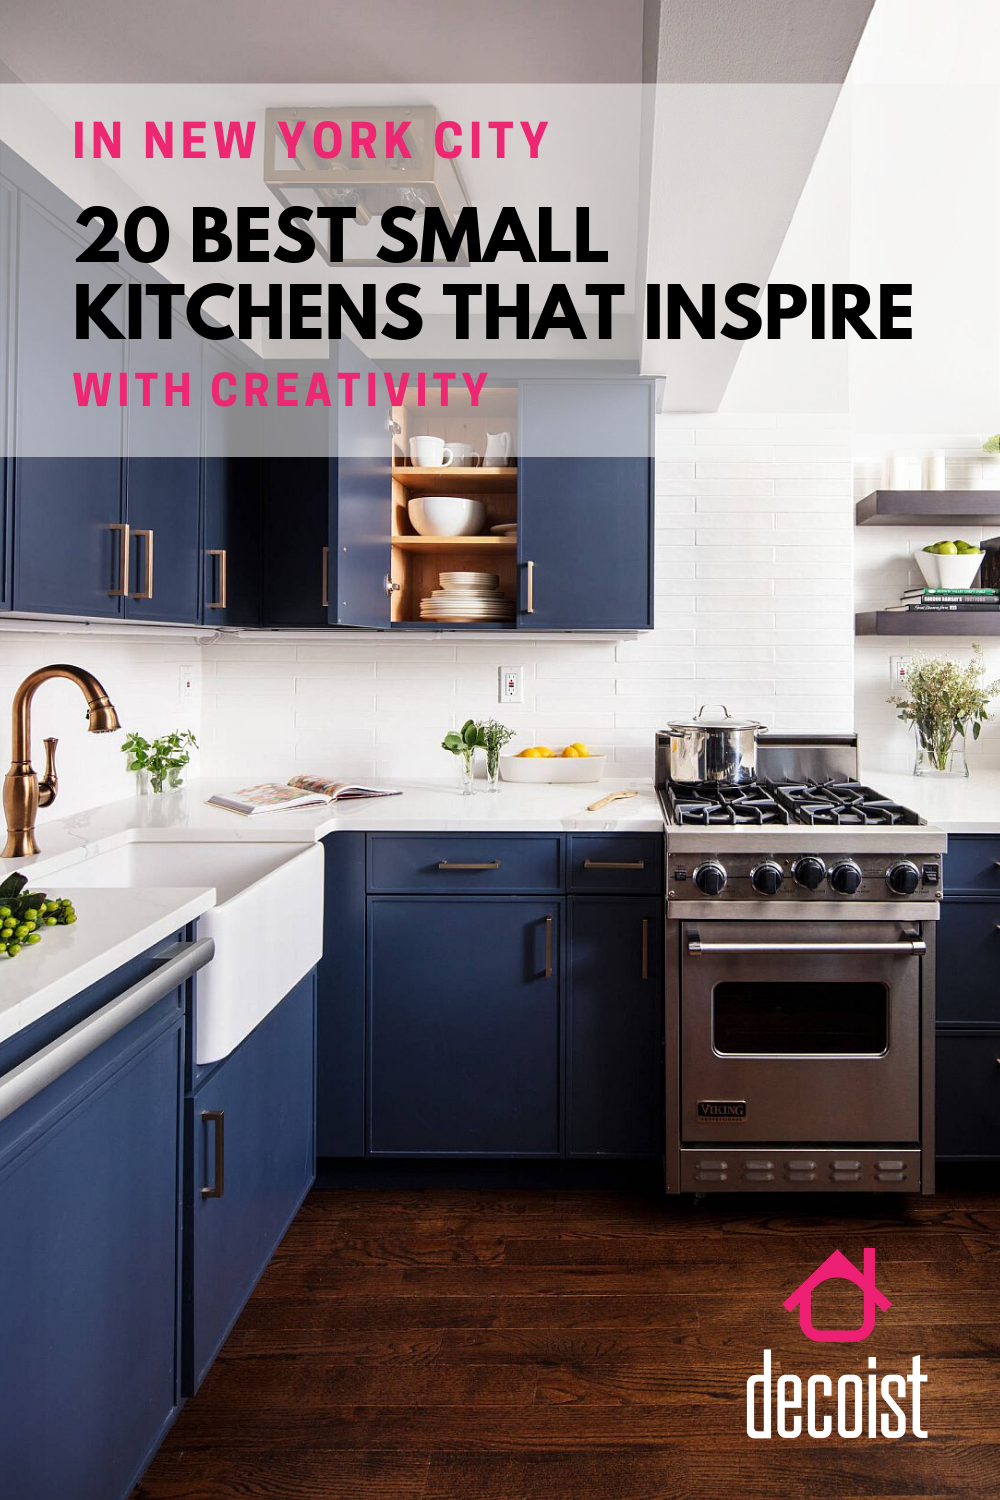 20 Best Small Kitchens From New York City That Inspire With Creativity In 2020 Kitchen Style Kitchen Cabinet Design Blue Kitchens